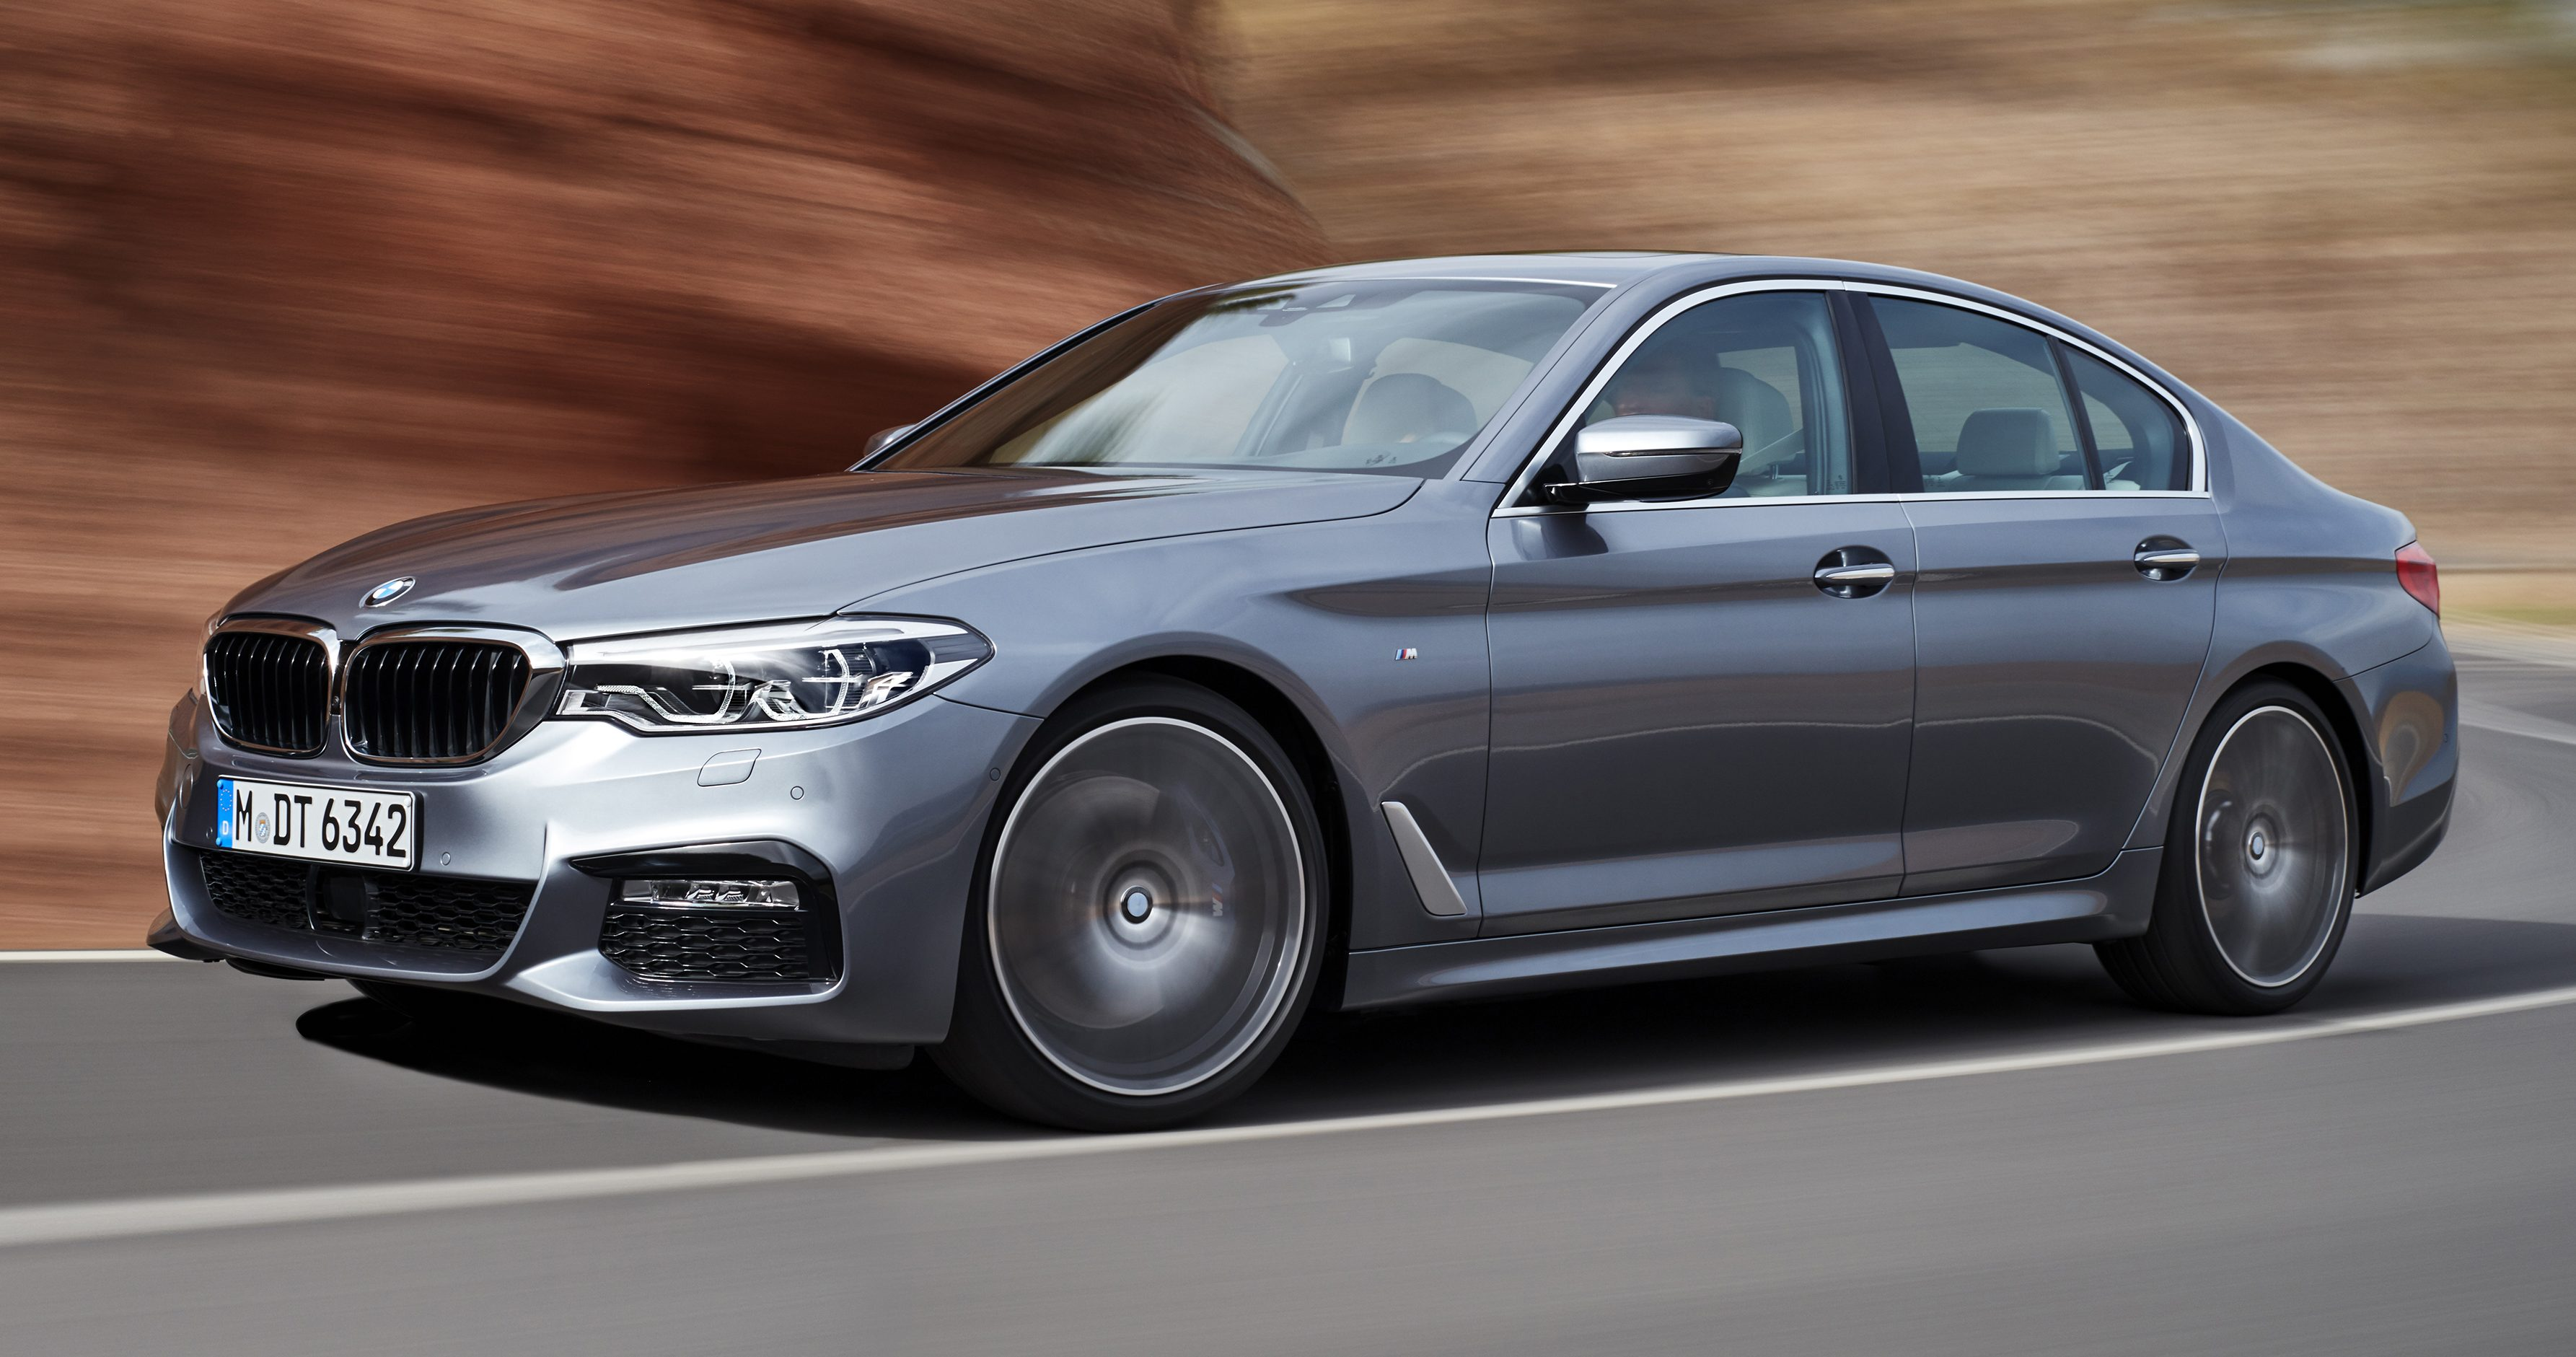 Ņ�新 Bmw 5 Series Ɯ�地正式上市,上路价格rm399k! The All New Bmw 5